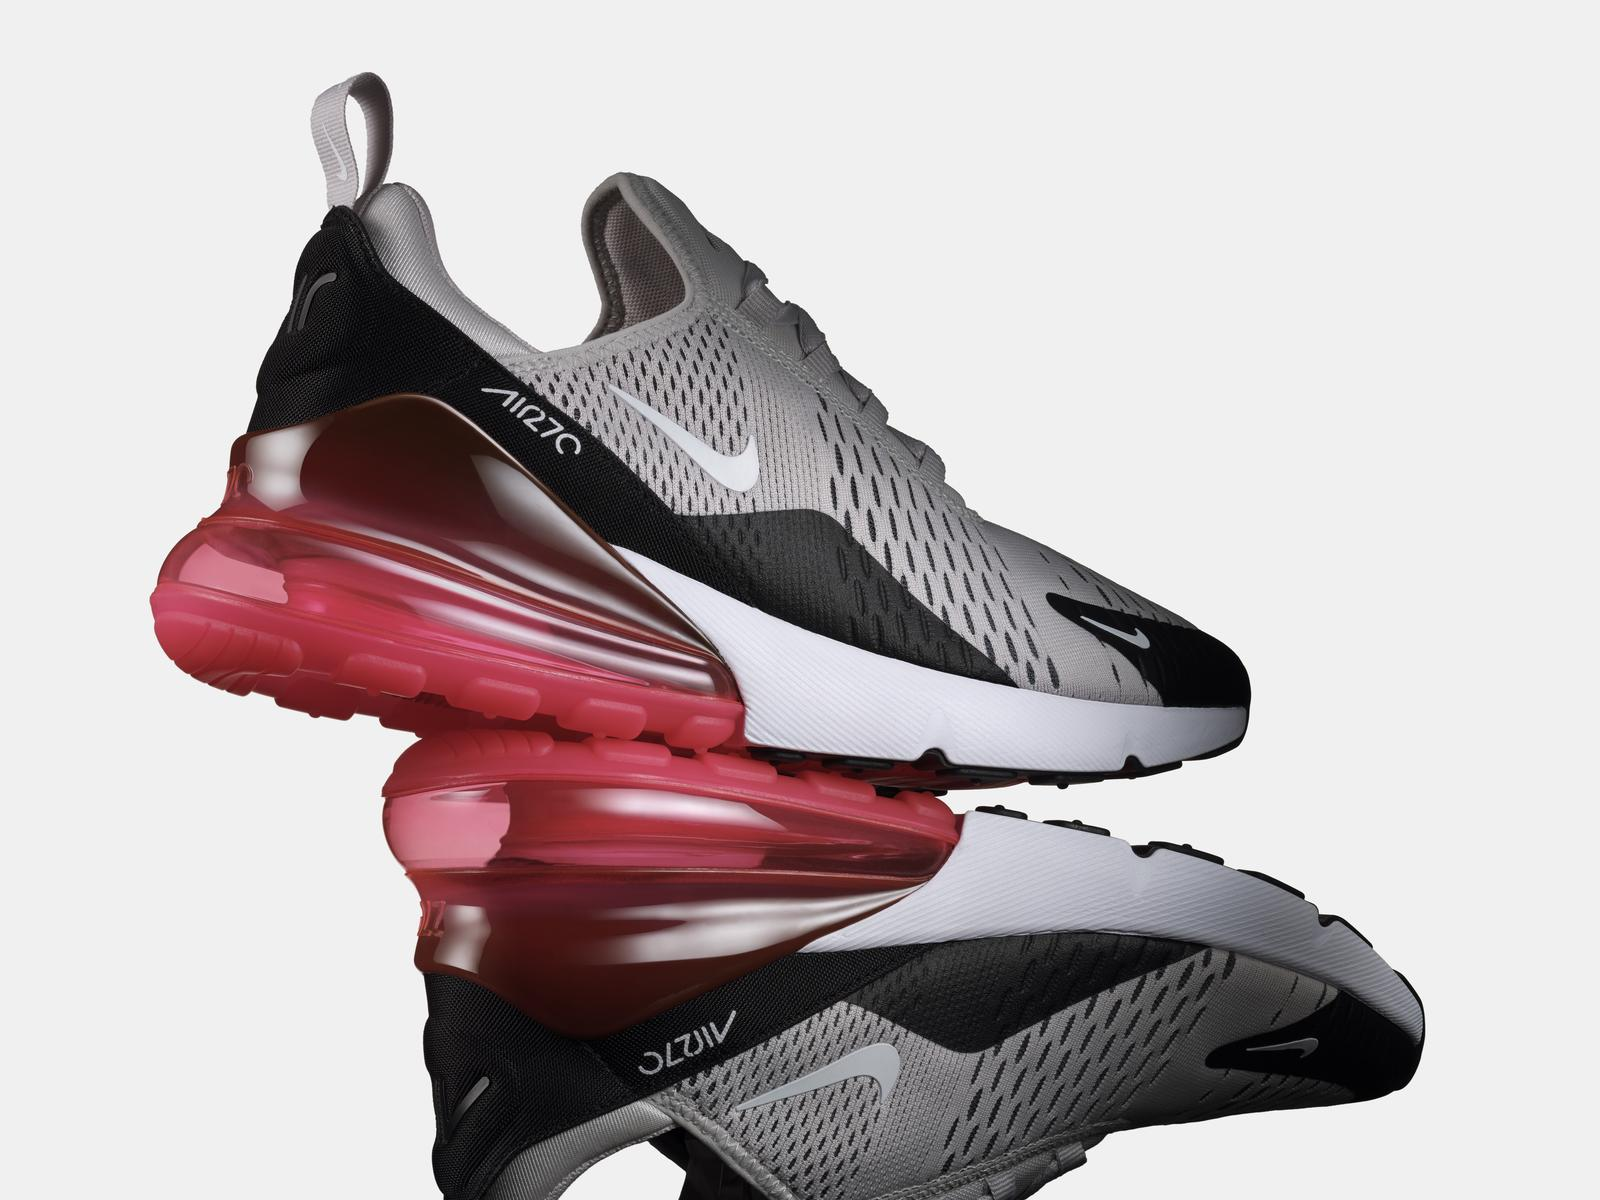 https://news.nike.com/news/eight-facts-about-the-all-new-air-max-270